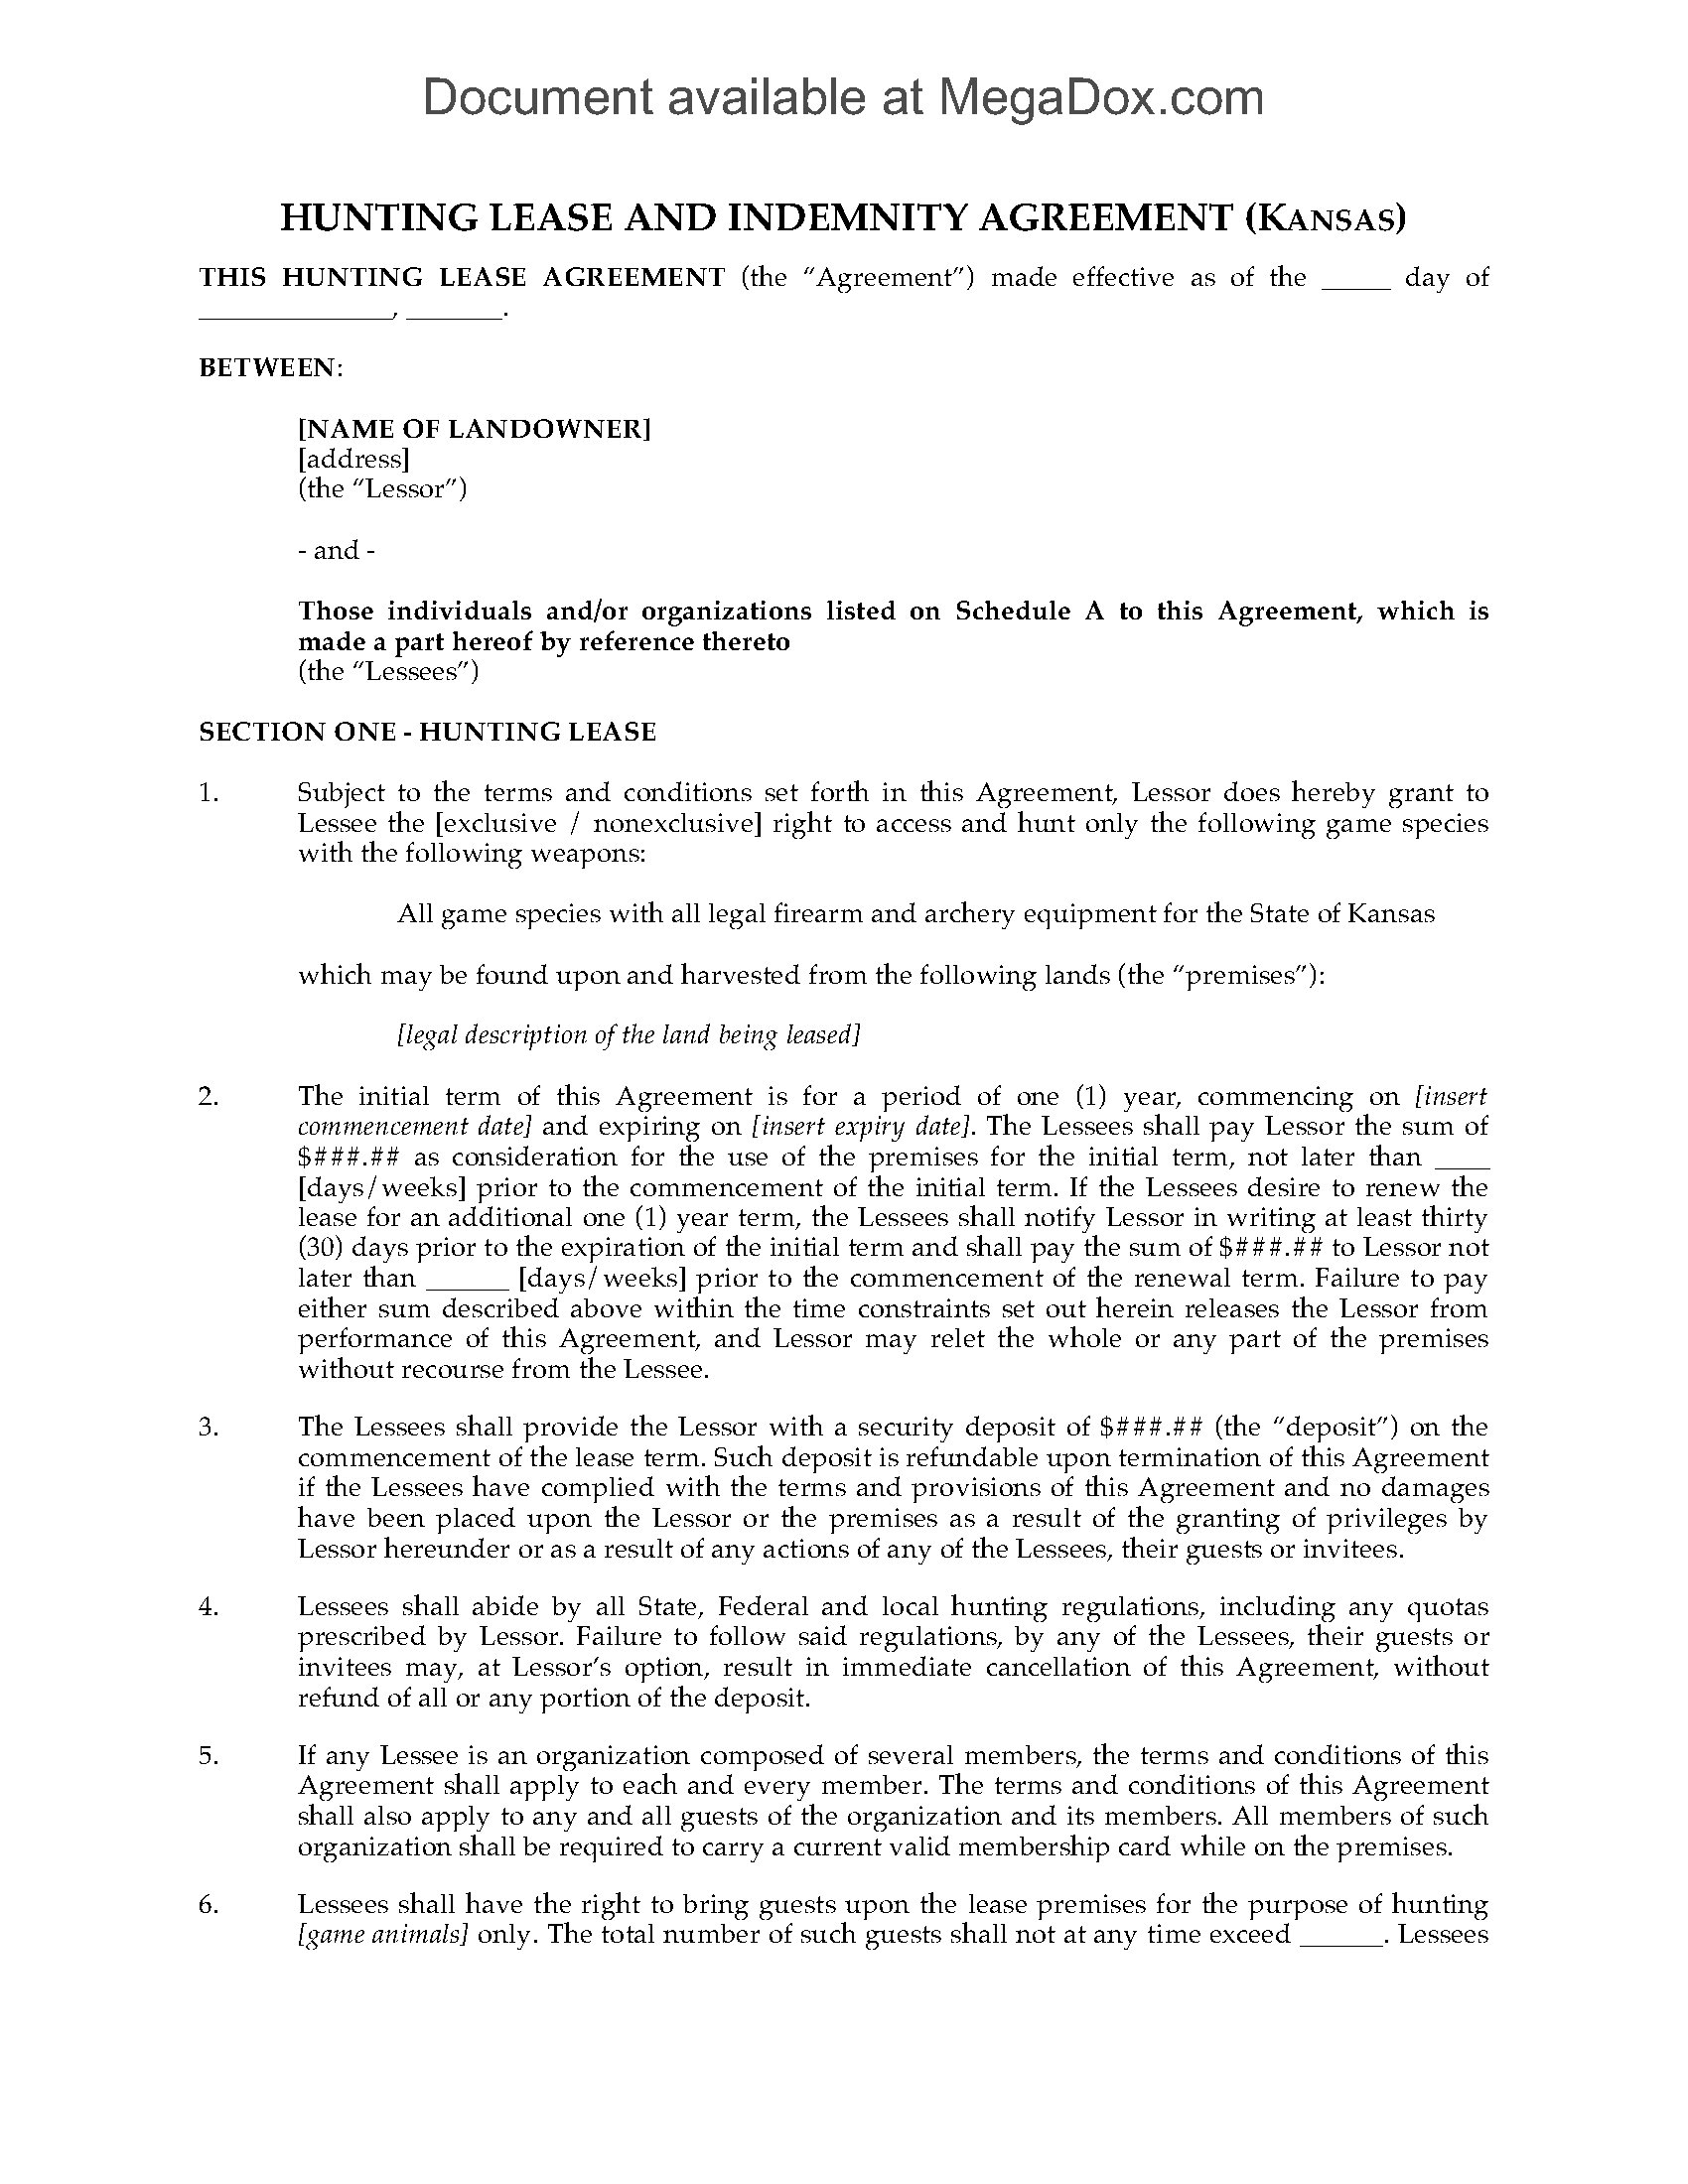 Kansas Hunting Lease Agreement